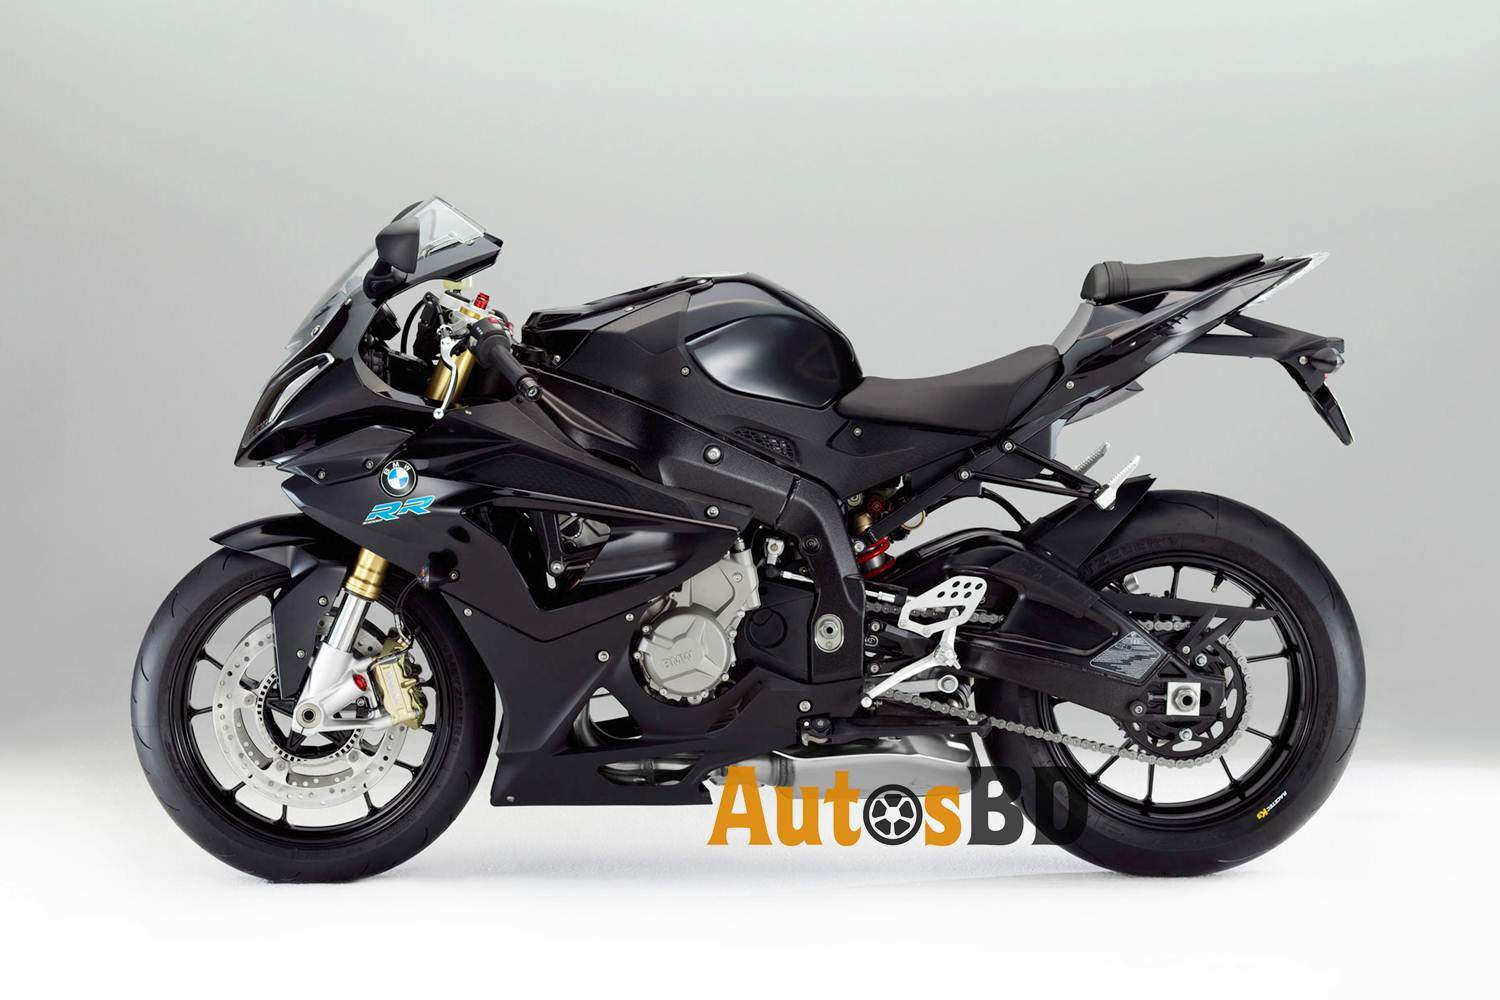 BMW S1000RR Motorcycle Specification